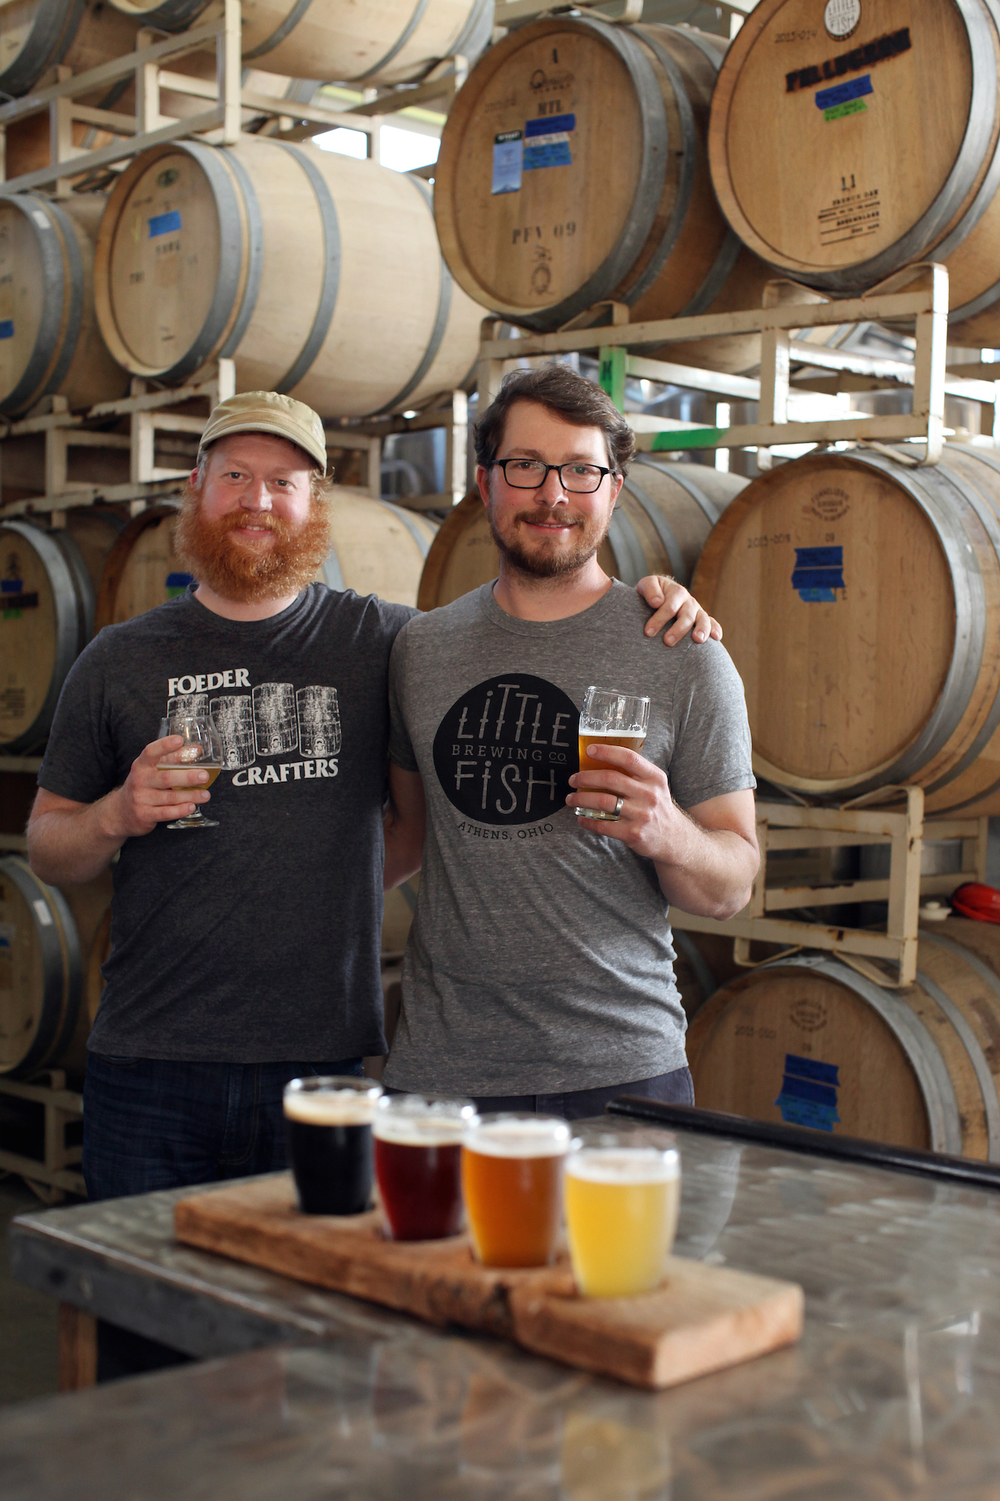 Little Fish Brewing Company owners Jimmy Stockwell (left) and Sean White (right). Photo by Sarah Warda.